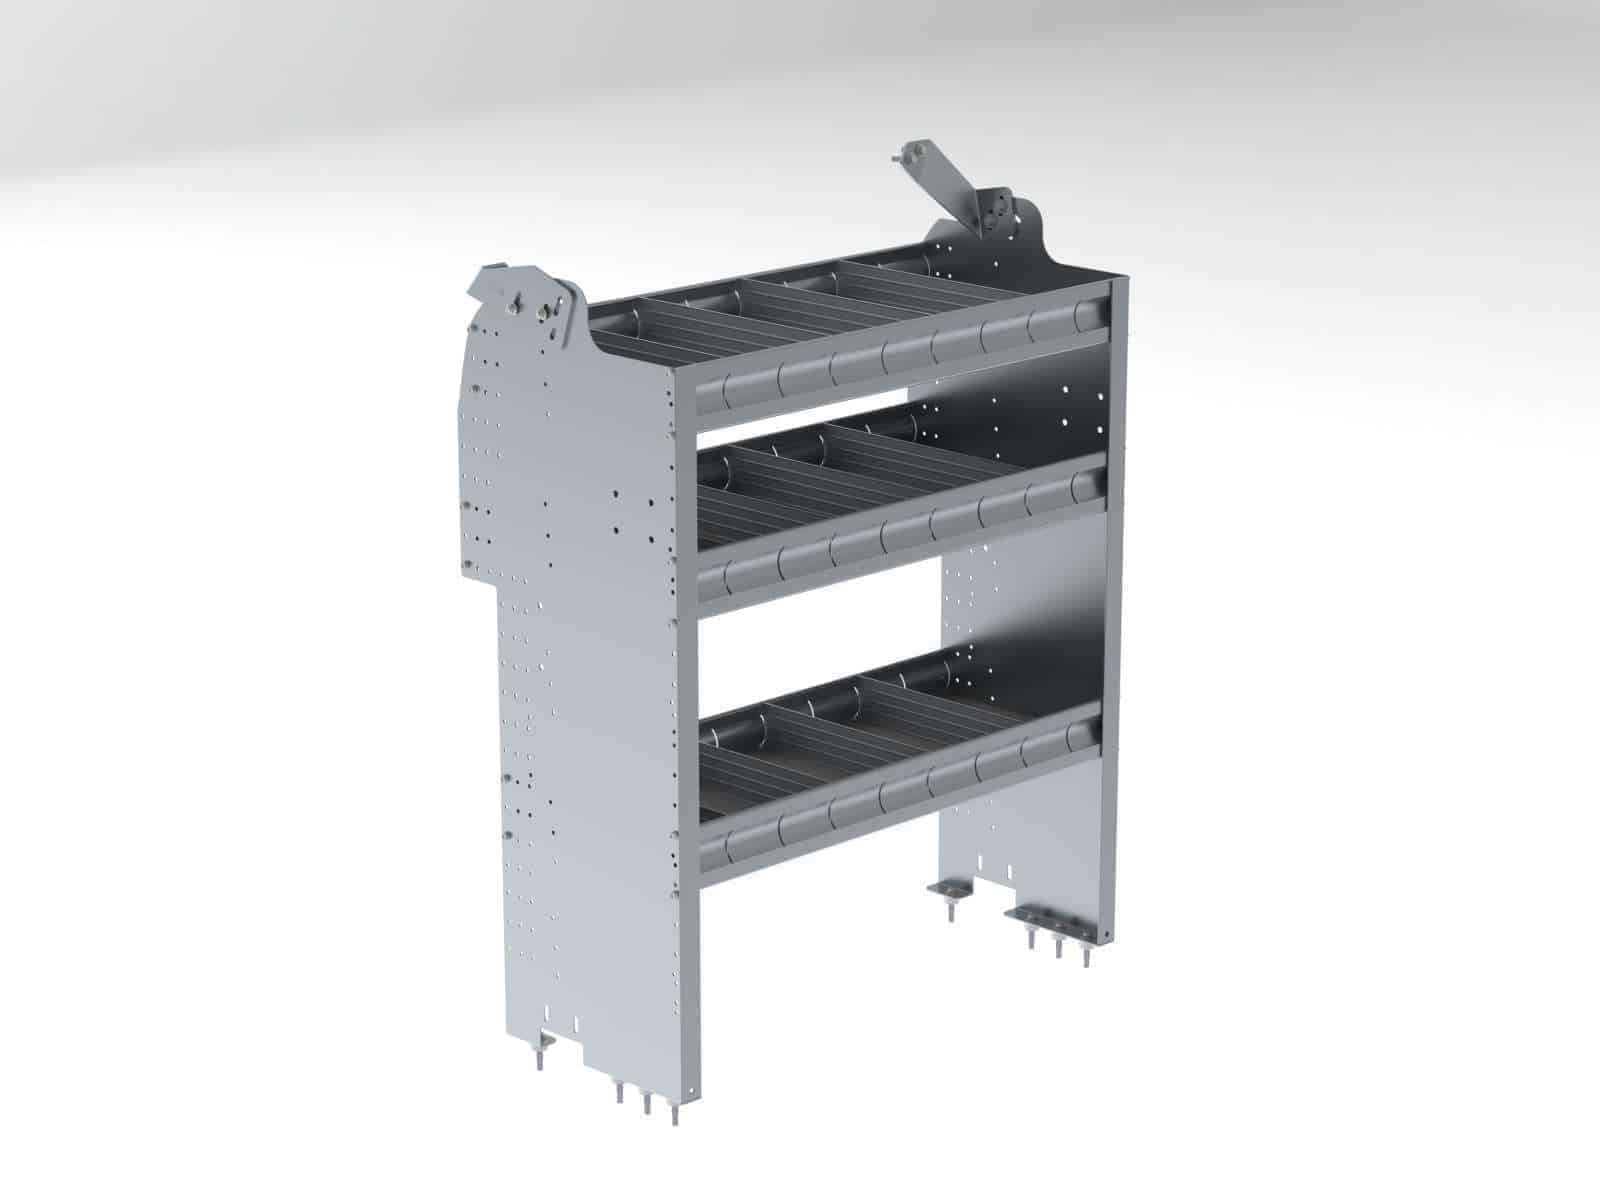 Cargo-Van-Shelving-System-Contoured-Back-Ford-Transit-Connect-SF36-3